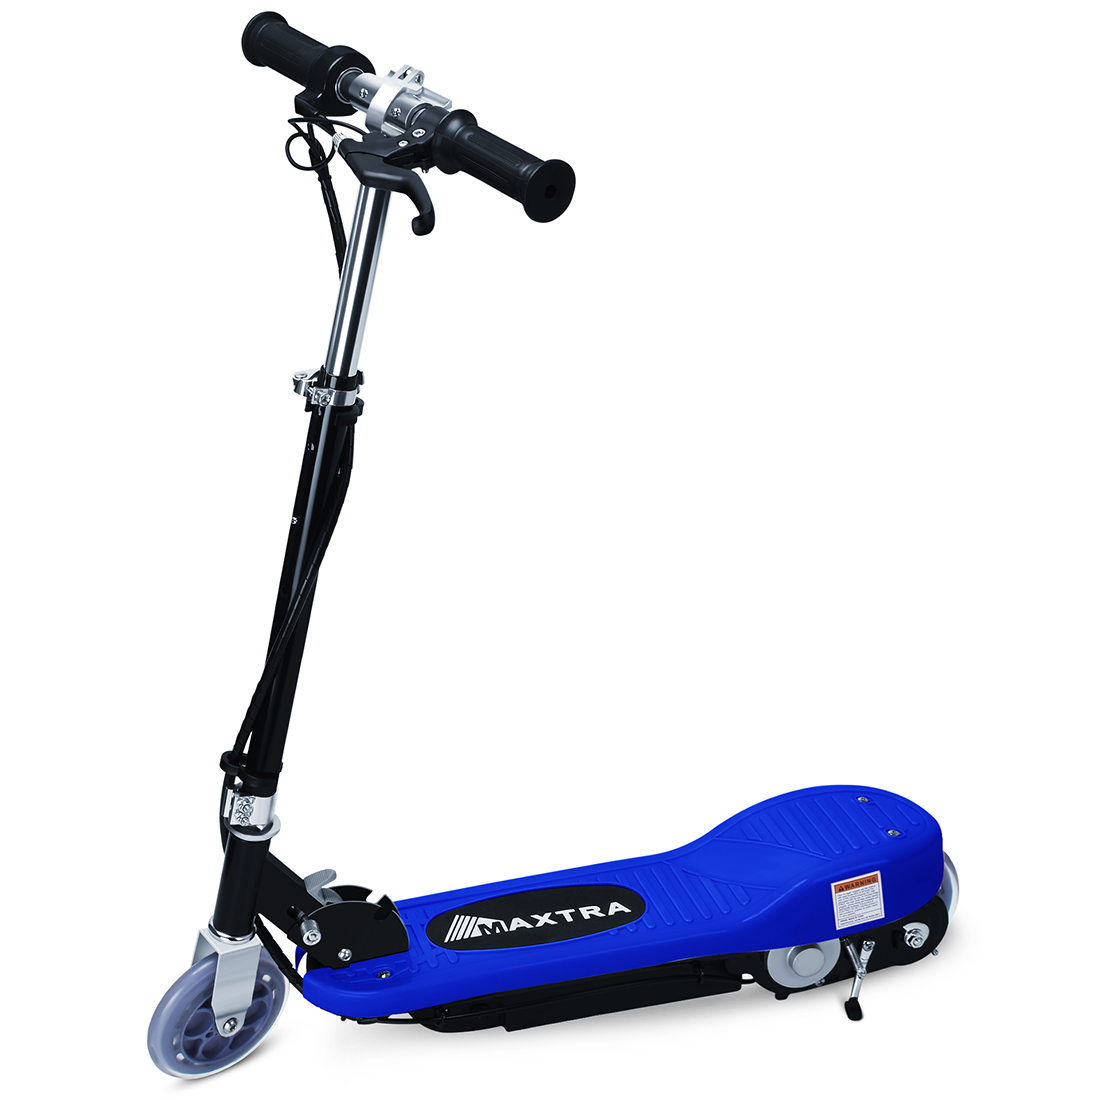 Maxtra ASTM Approved E120 160lbs Max Weight Capacity Electric Scooter Motorized Bike Rechargeable Battery Dark Blue